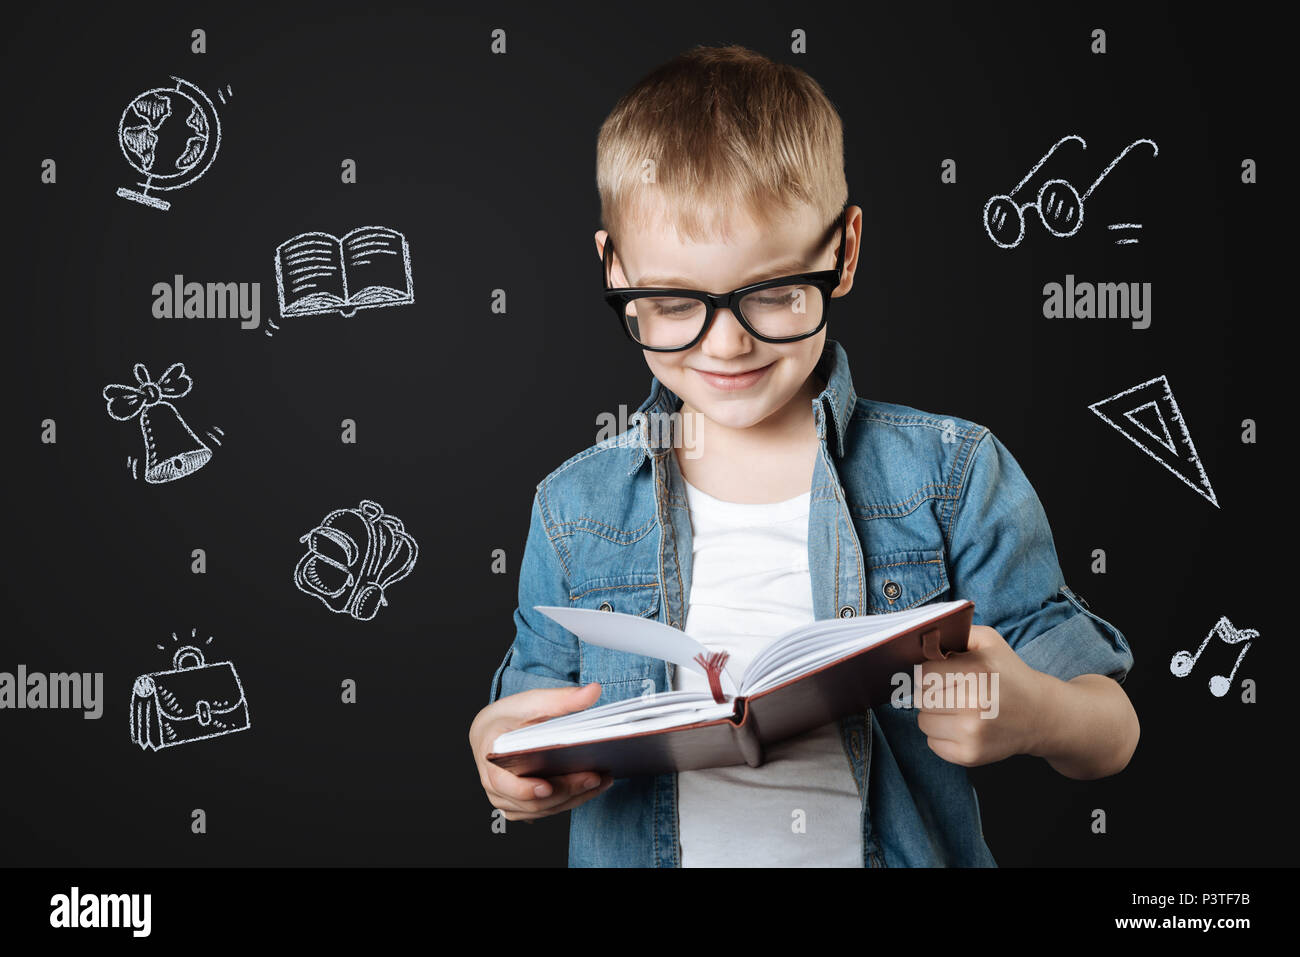 Smiling schoolboy wearing glasses while reading - Stock Image